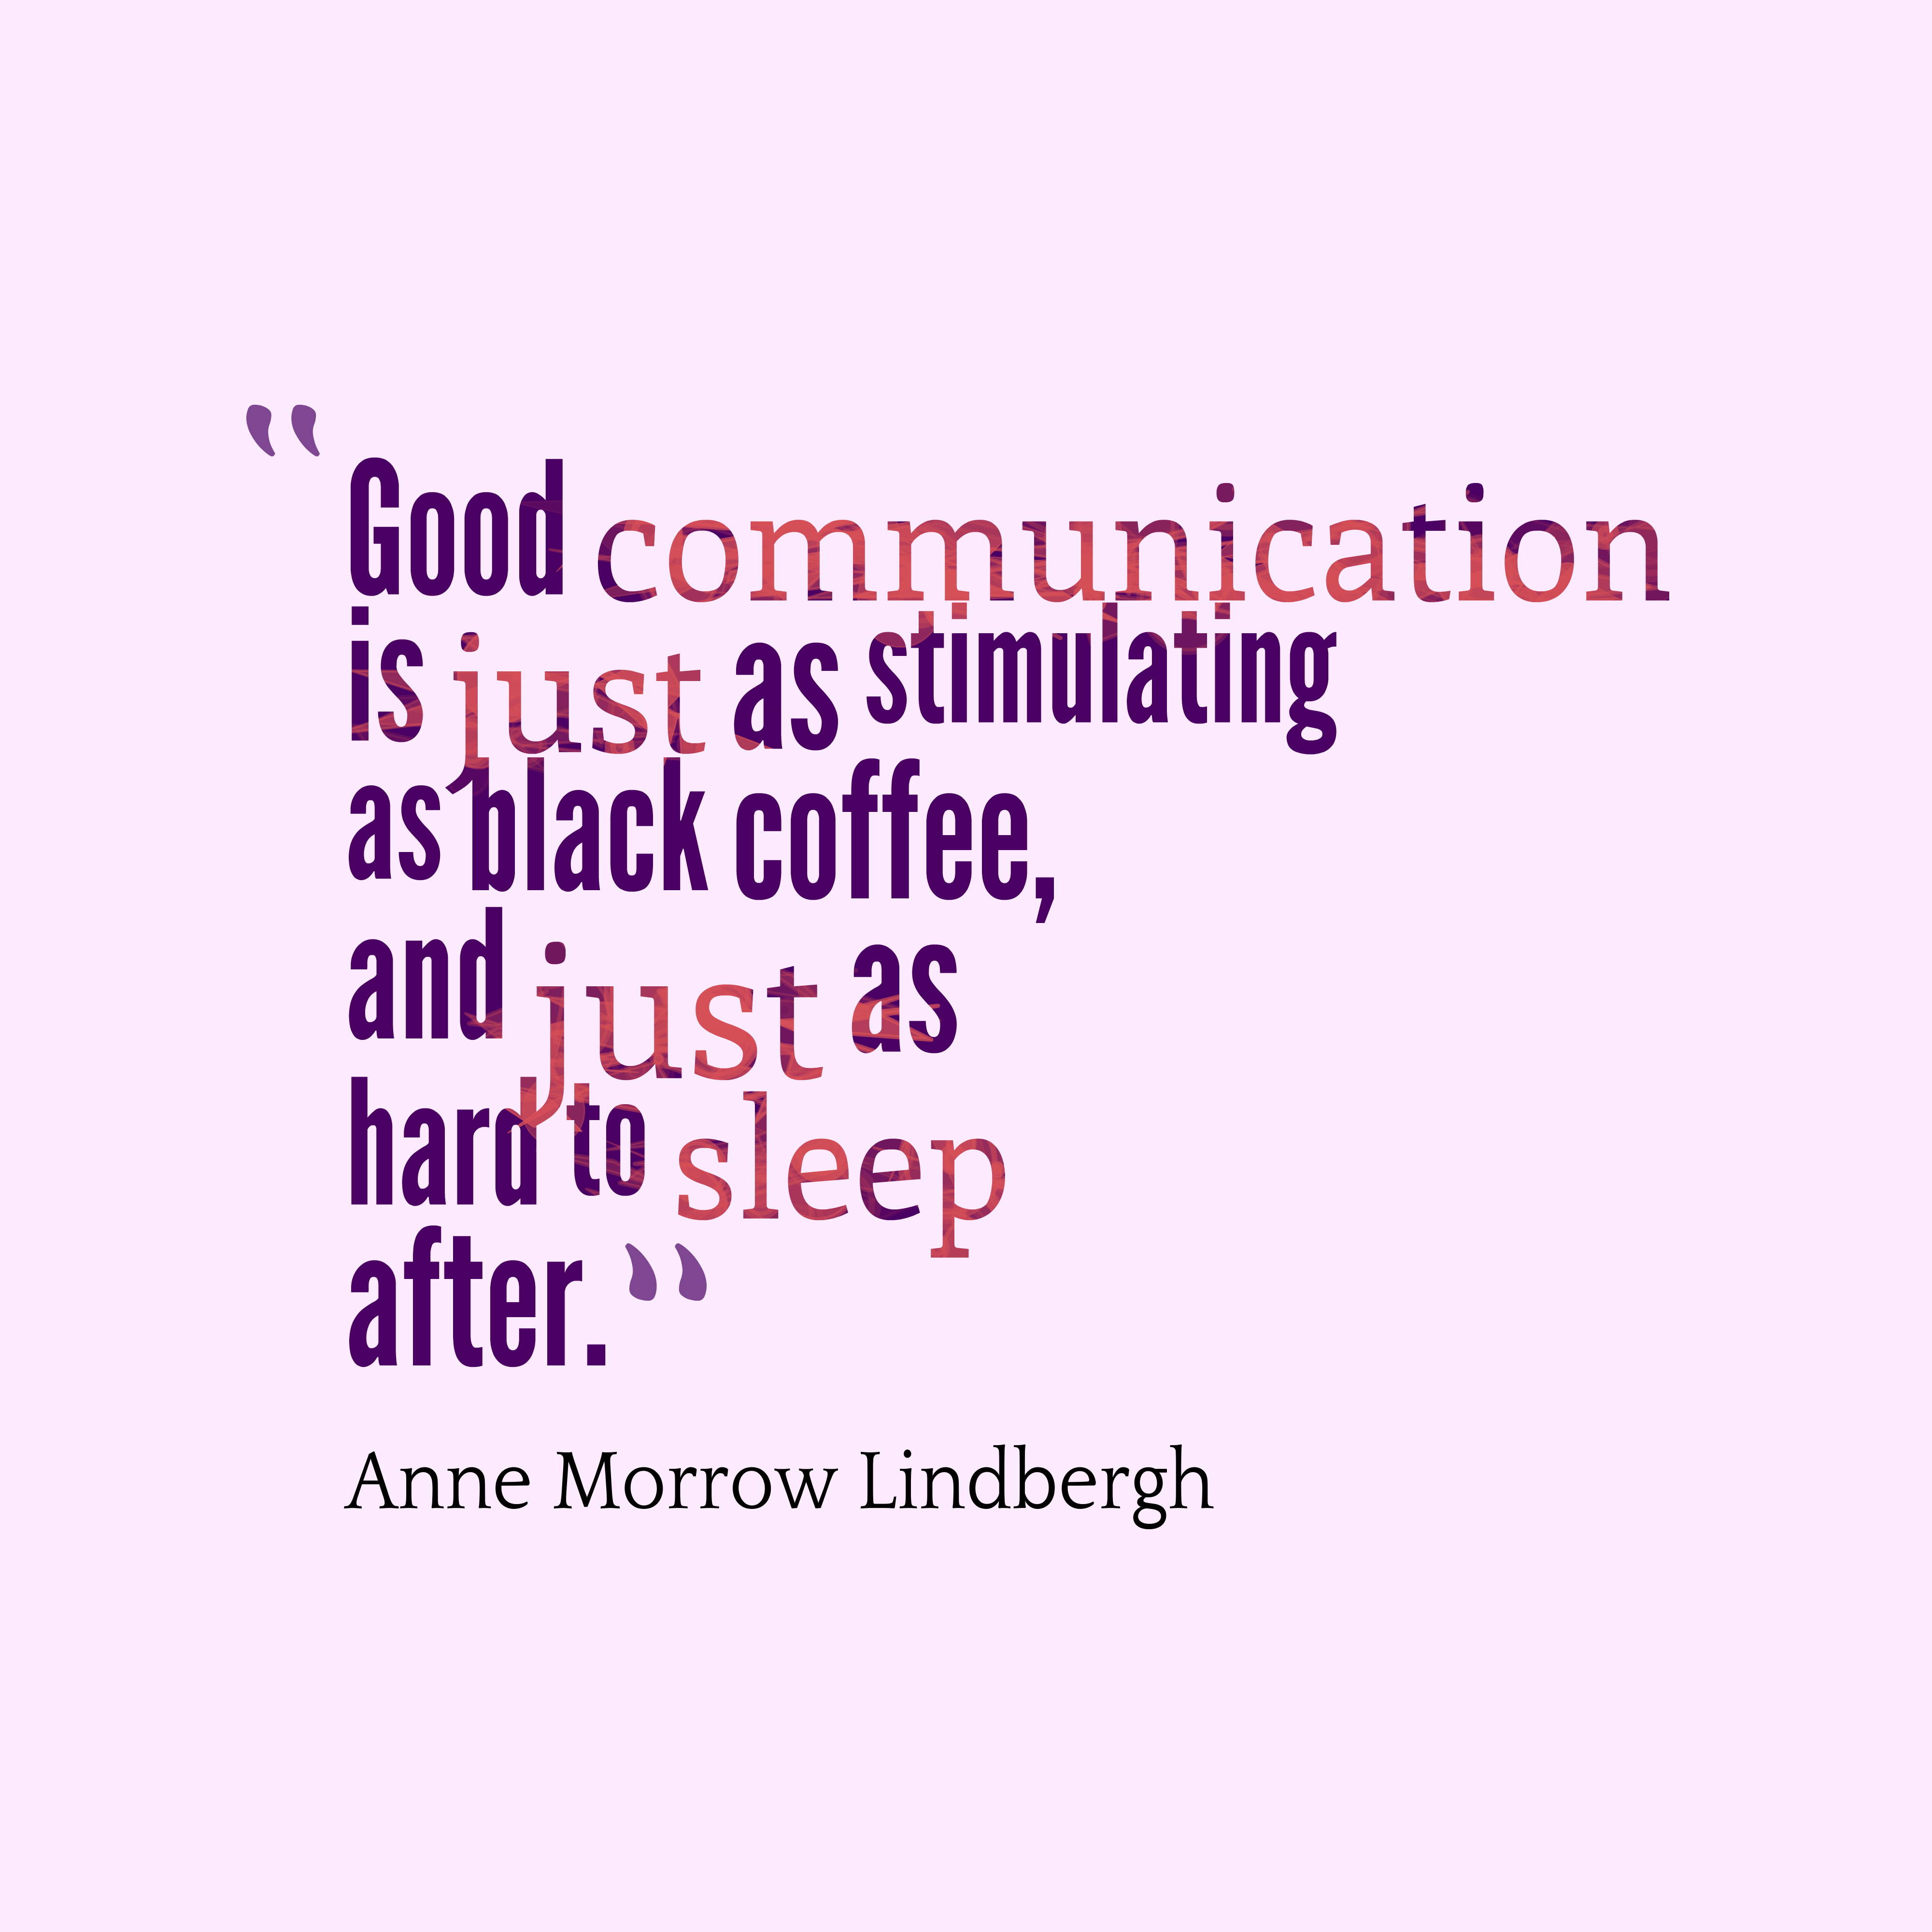 Quotes image of Good communication is just as stimulating as black coffee, and just as hard to sleep after.